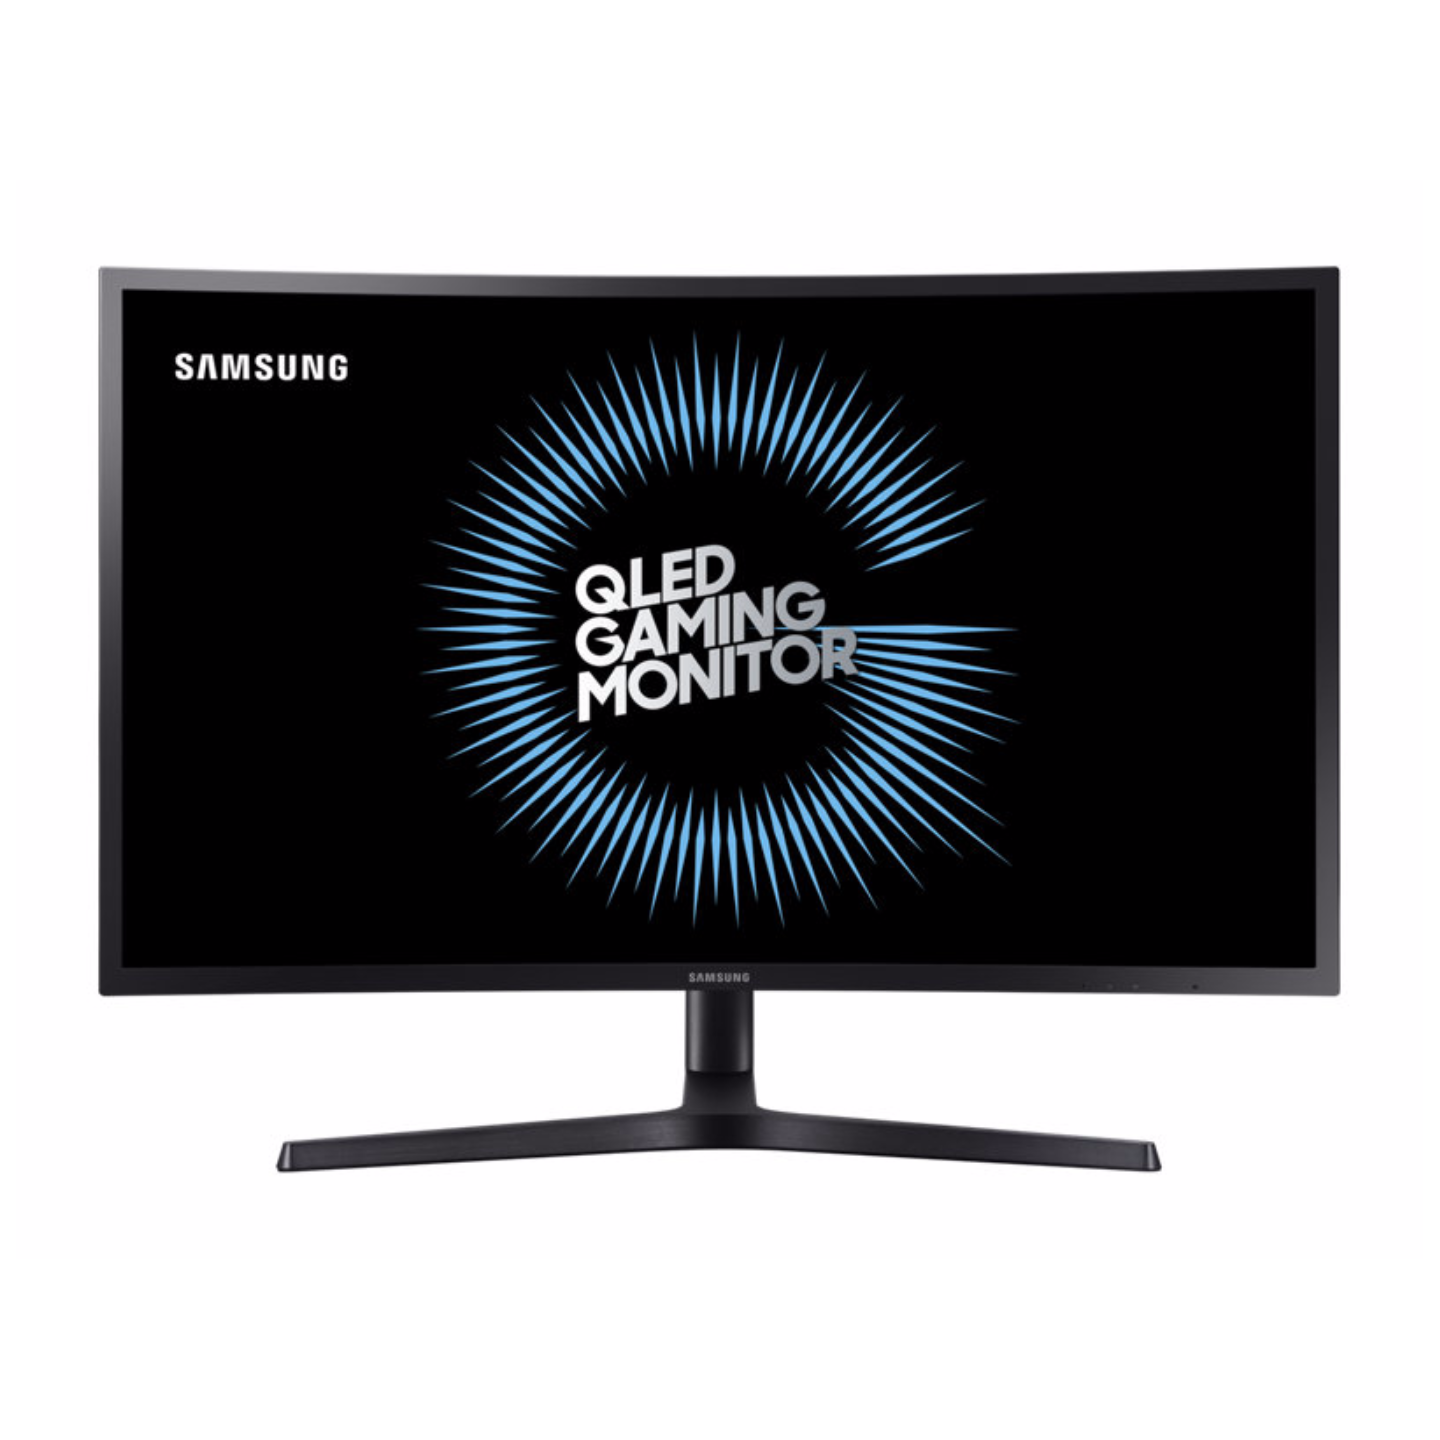 "Samsung 32"" QLED Gaming Monitor with richer and clear gameplay (Model : LC32HG70QQEXXS)"